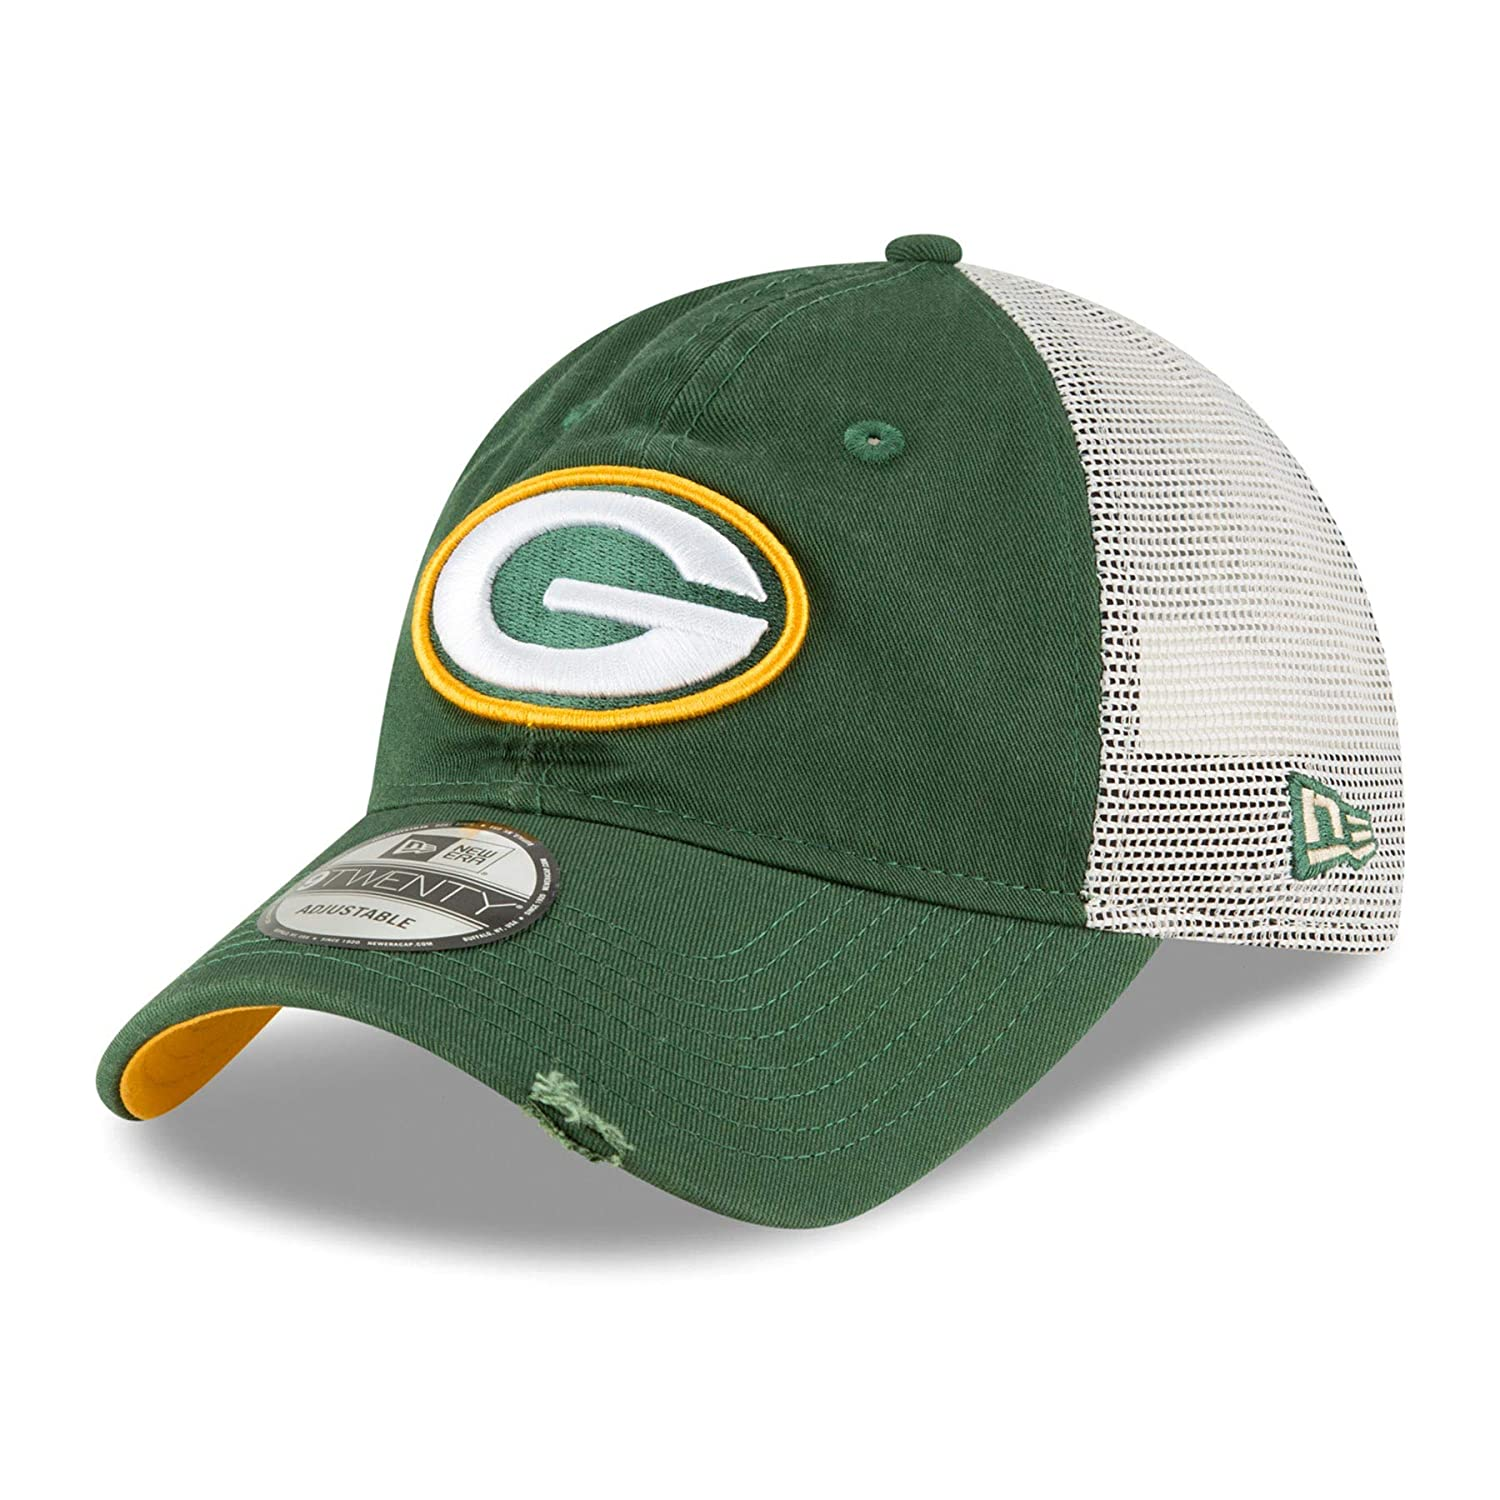 230fac376 Amazon.com : New Era Green Bay Packers NFL 9Twenty Stated Back Adjustable  Meshback Hat : Sports & Outdoors